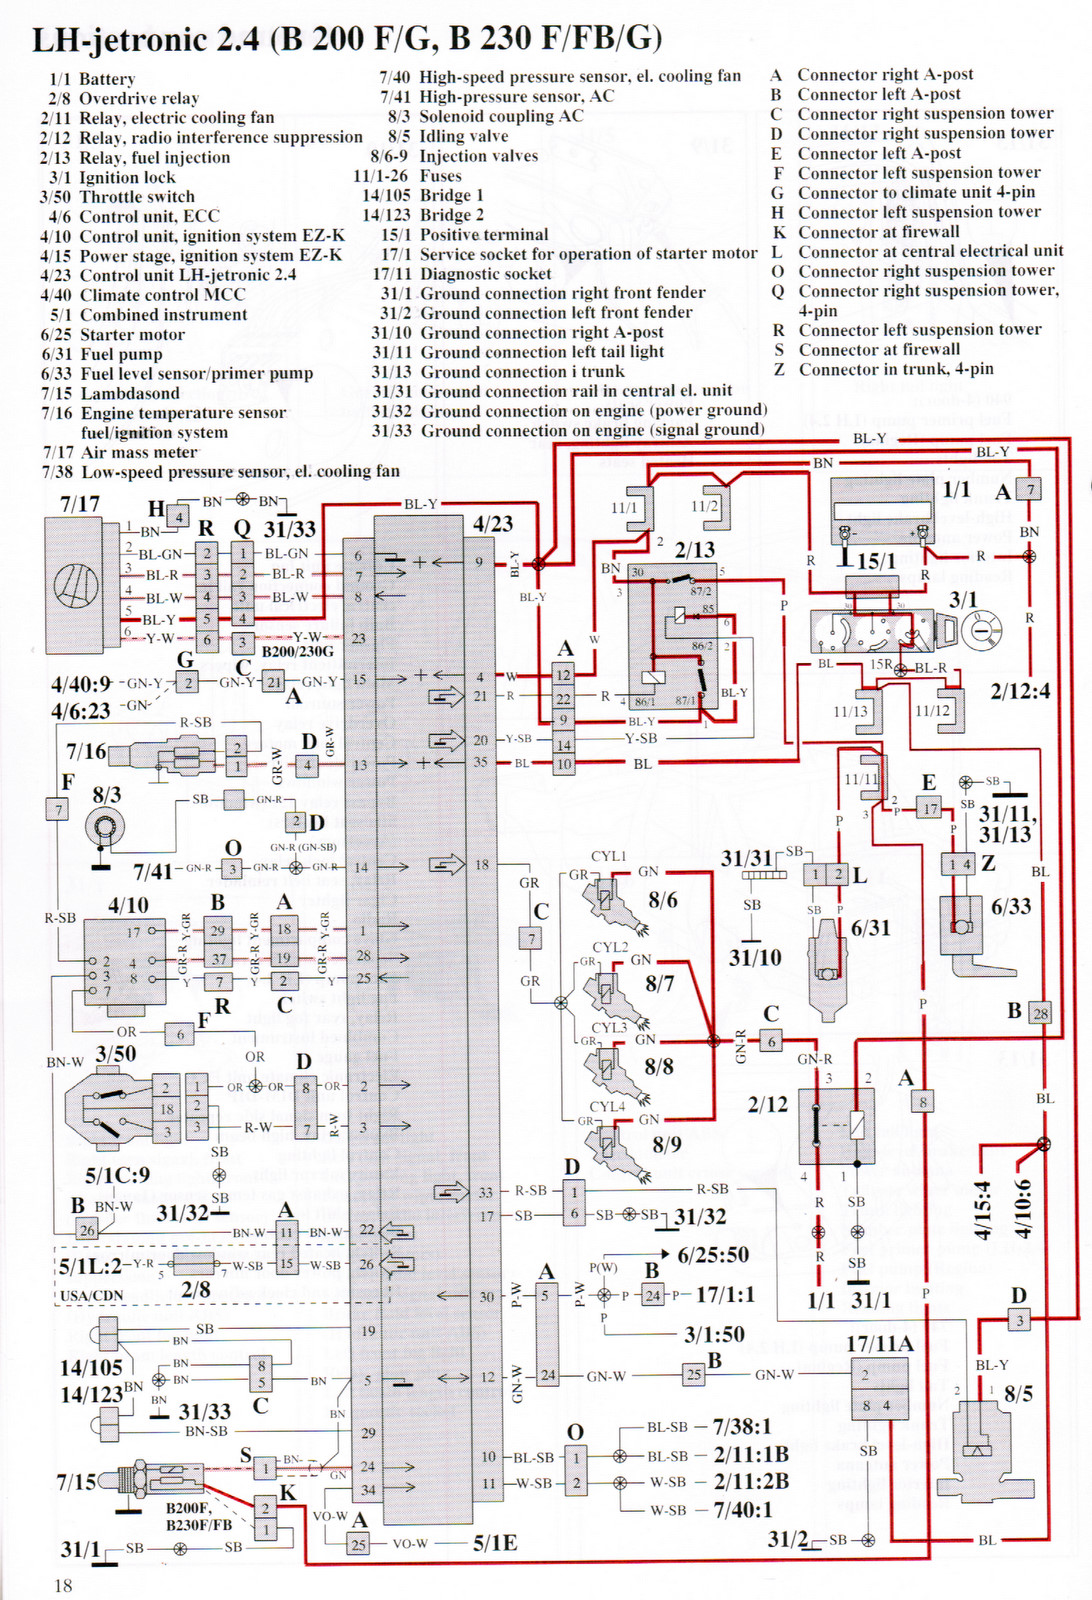 Wiring Diagram For 1990 Volvo 740 : Volvo fuel system free engine image for